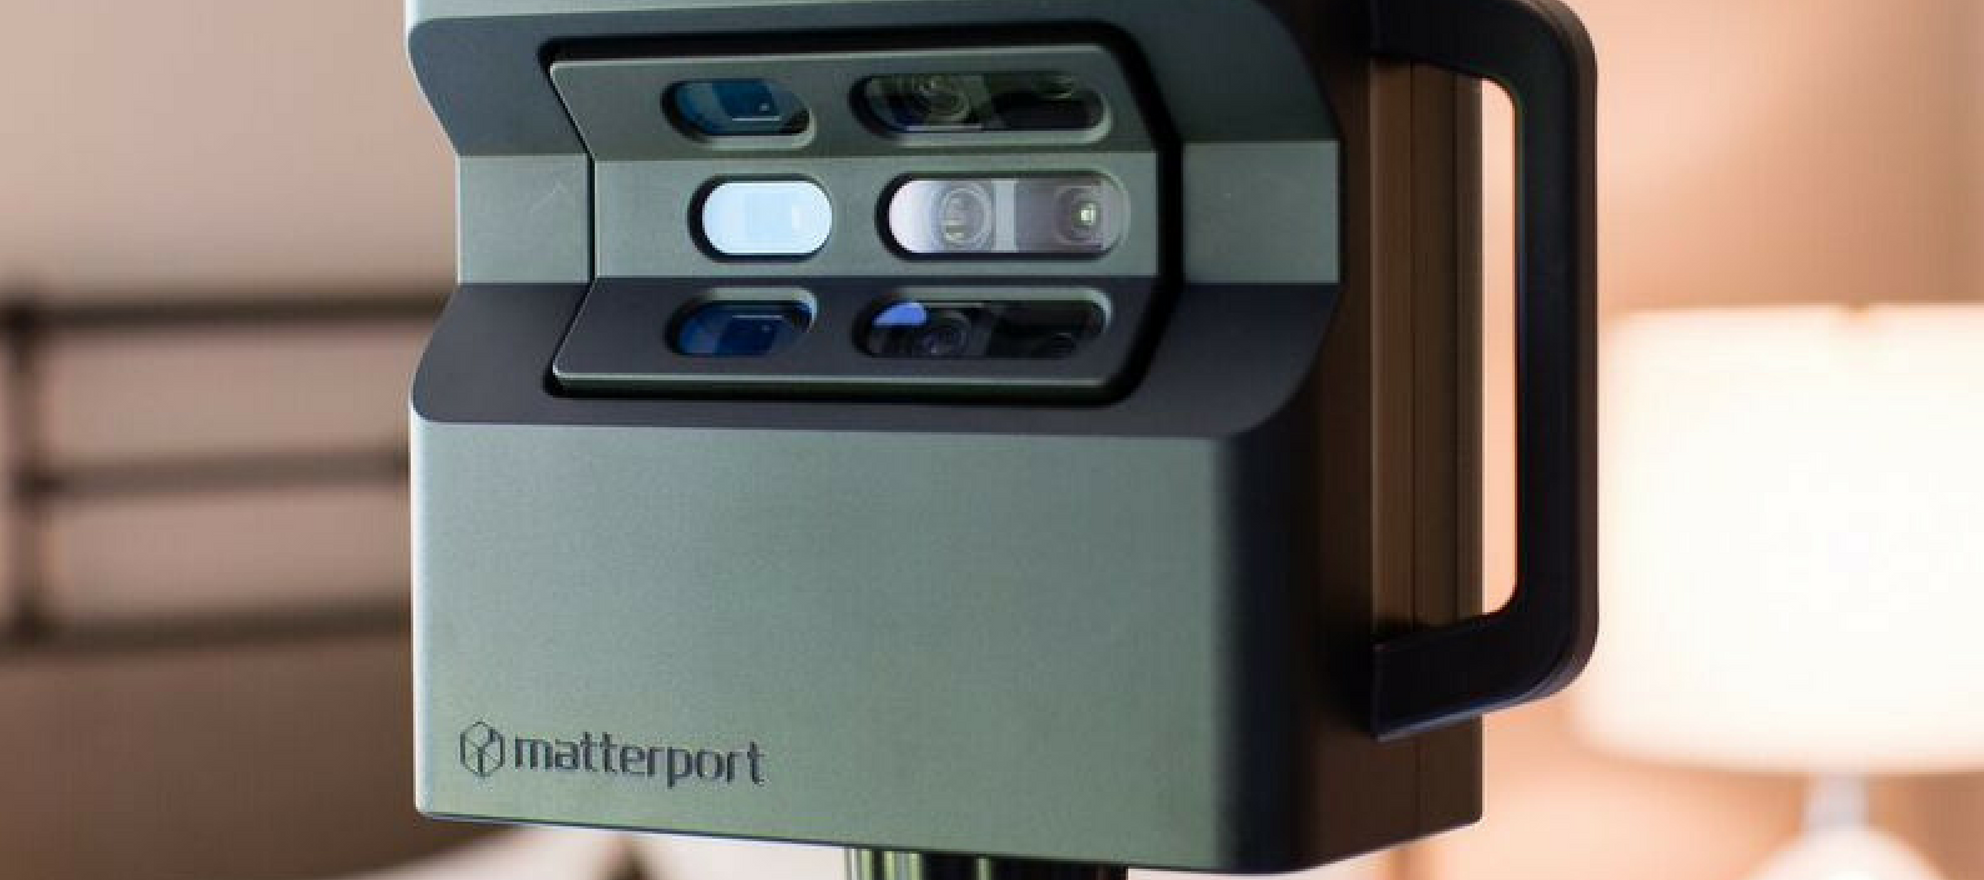 Matterport rolls back changes to terms of service after customer confusion